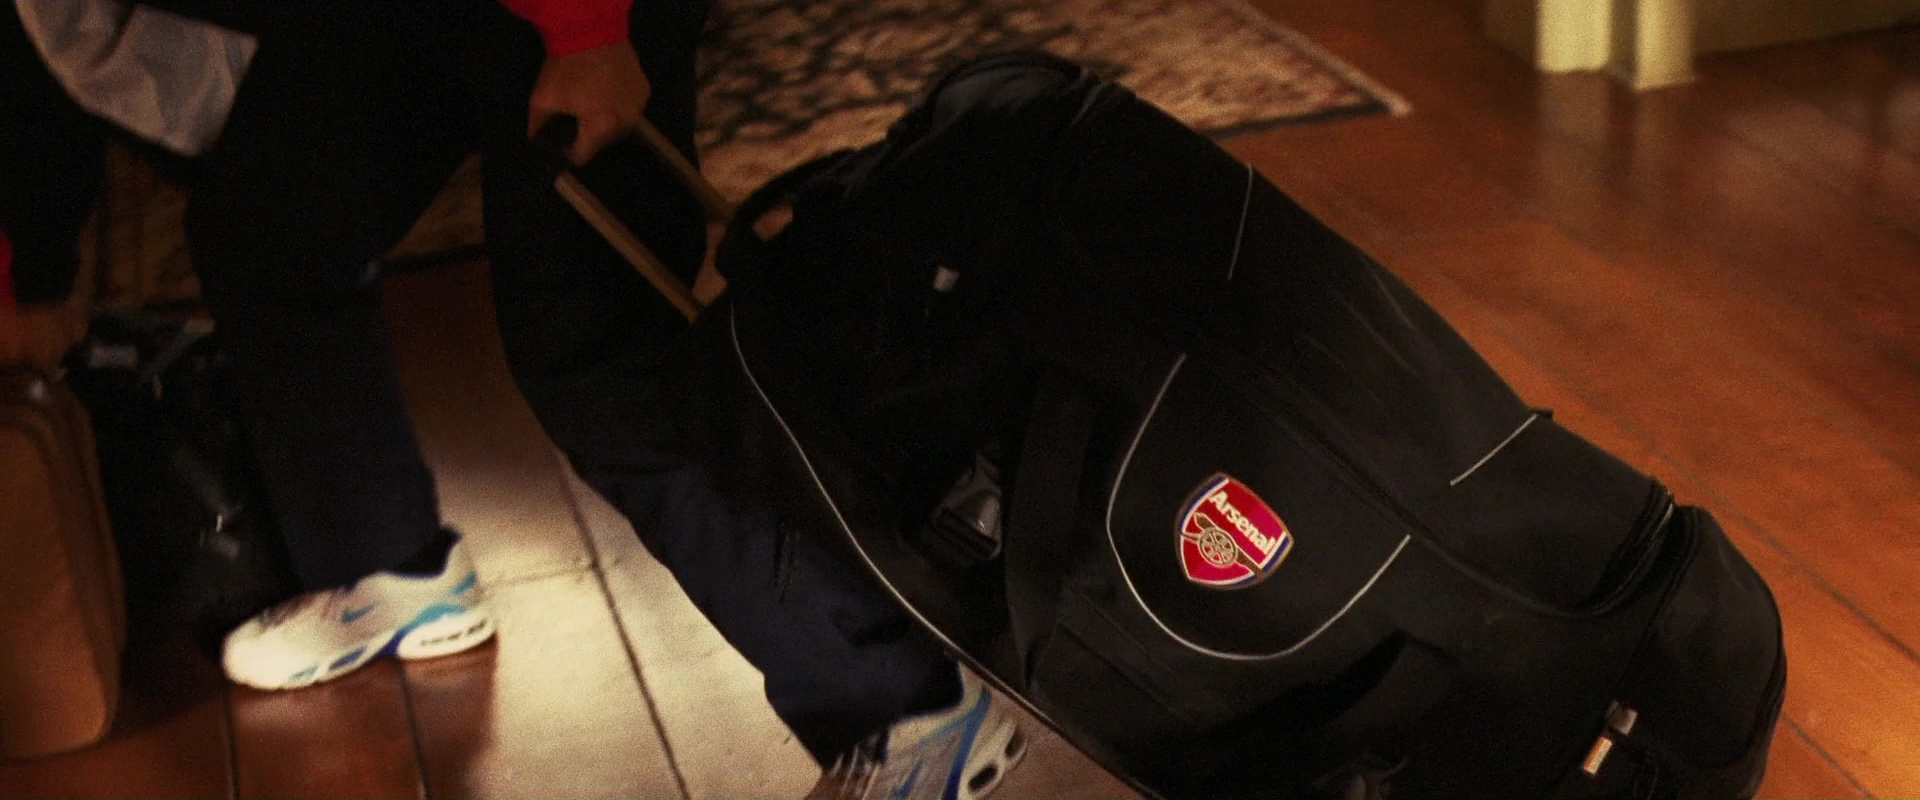 Nike and Arsenal F.C. Tracksuits and Nike Shoes in Ocean's Twelve (2004)  Movie Product